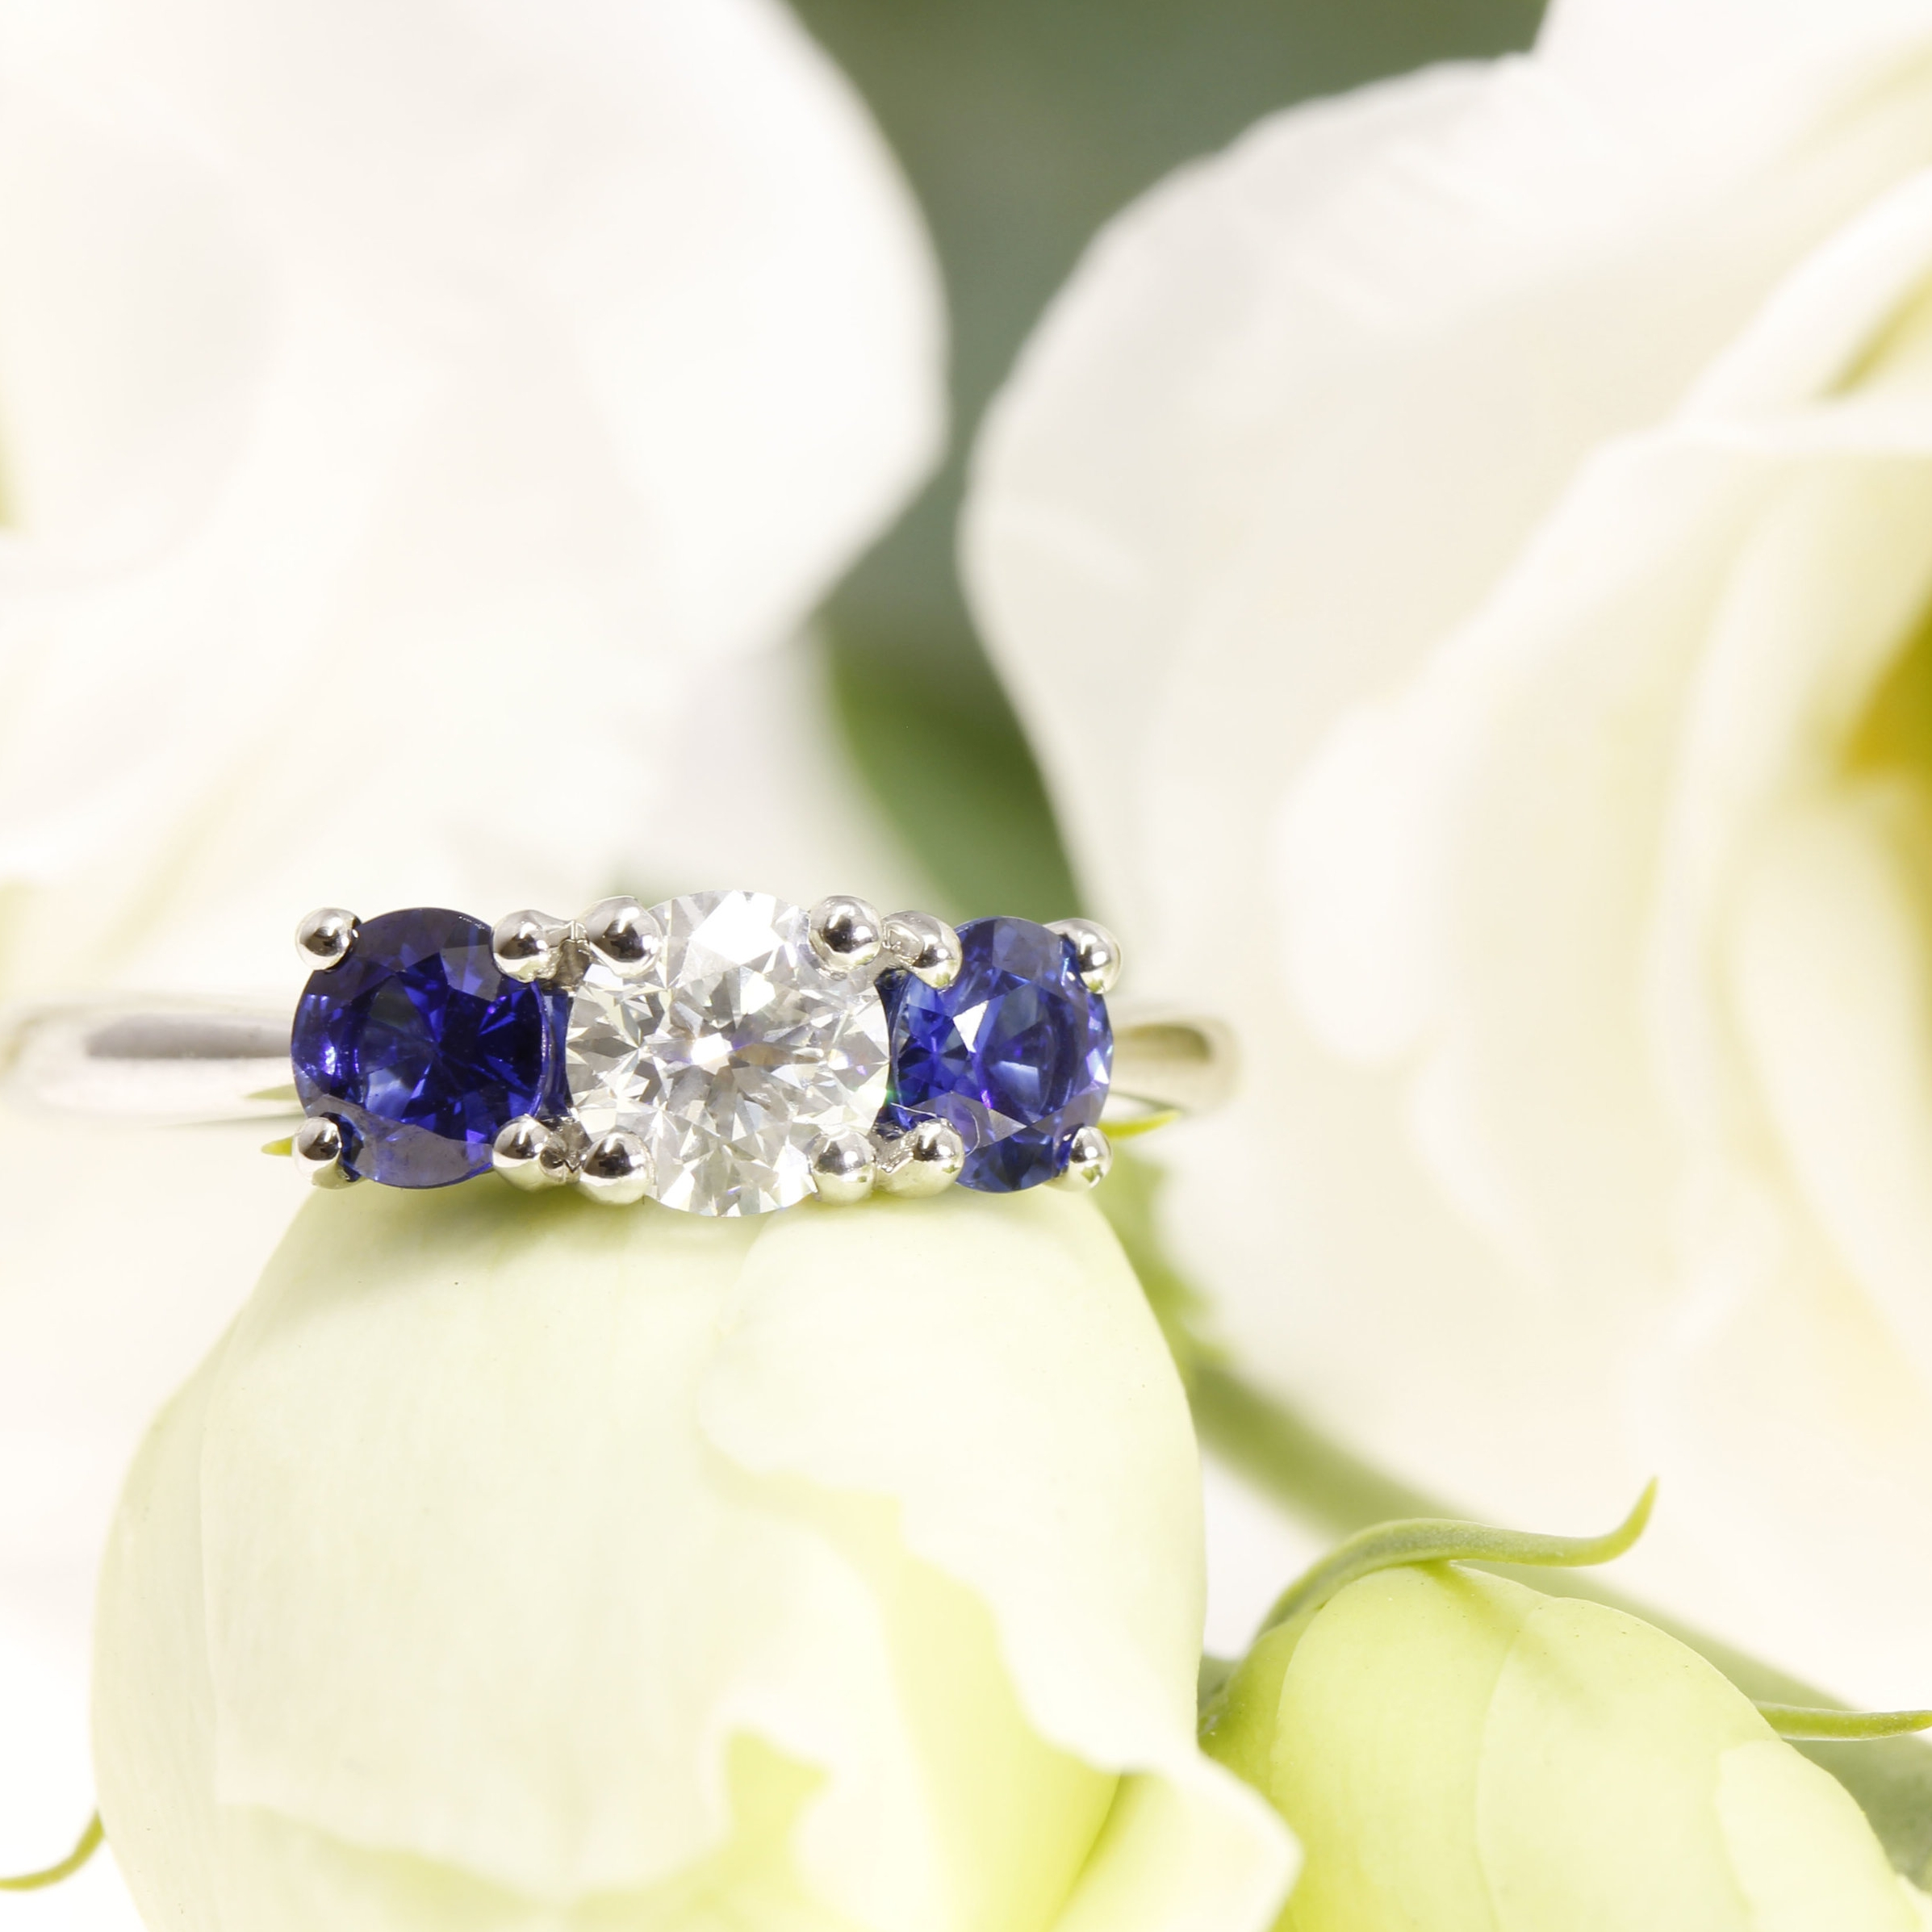 Trilogy Brilliant Cut Diamond & Sapphire Engagement Ring, Hand Crafted in Hatton Garden, London.